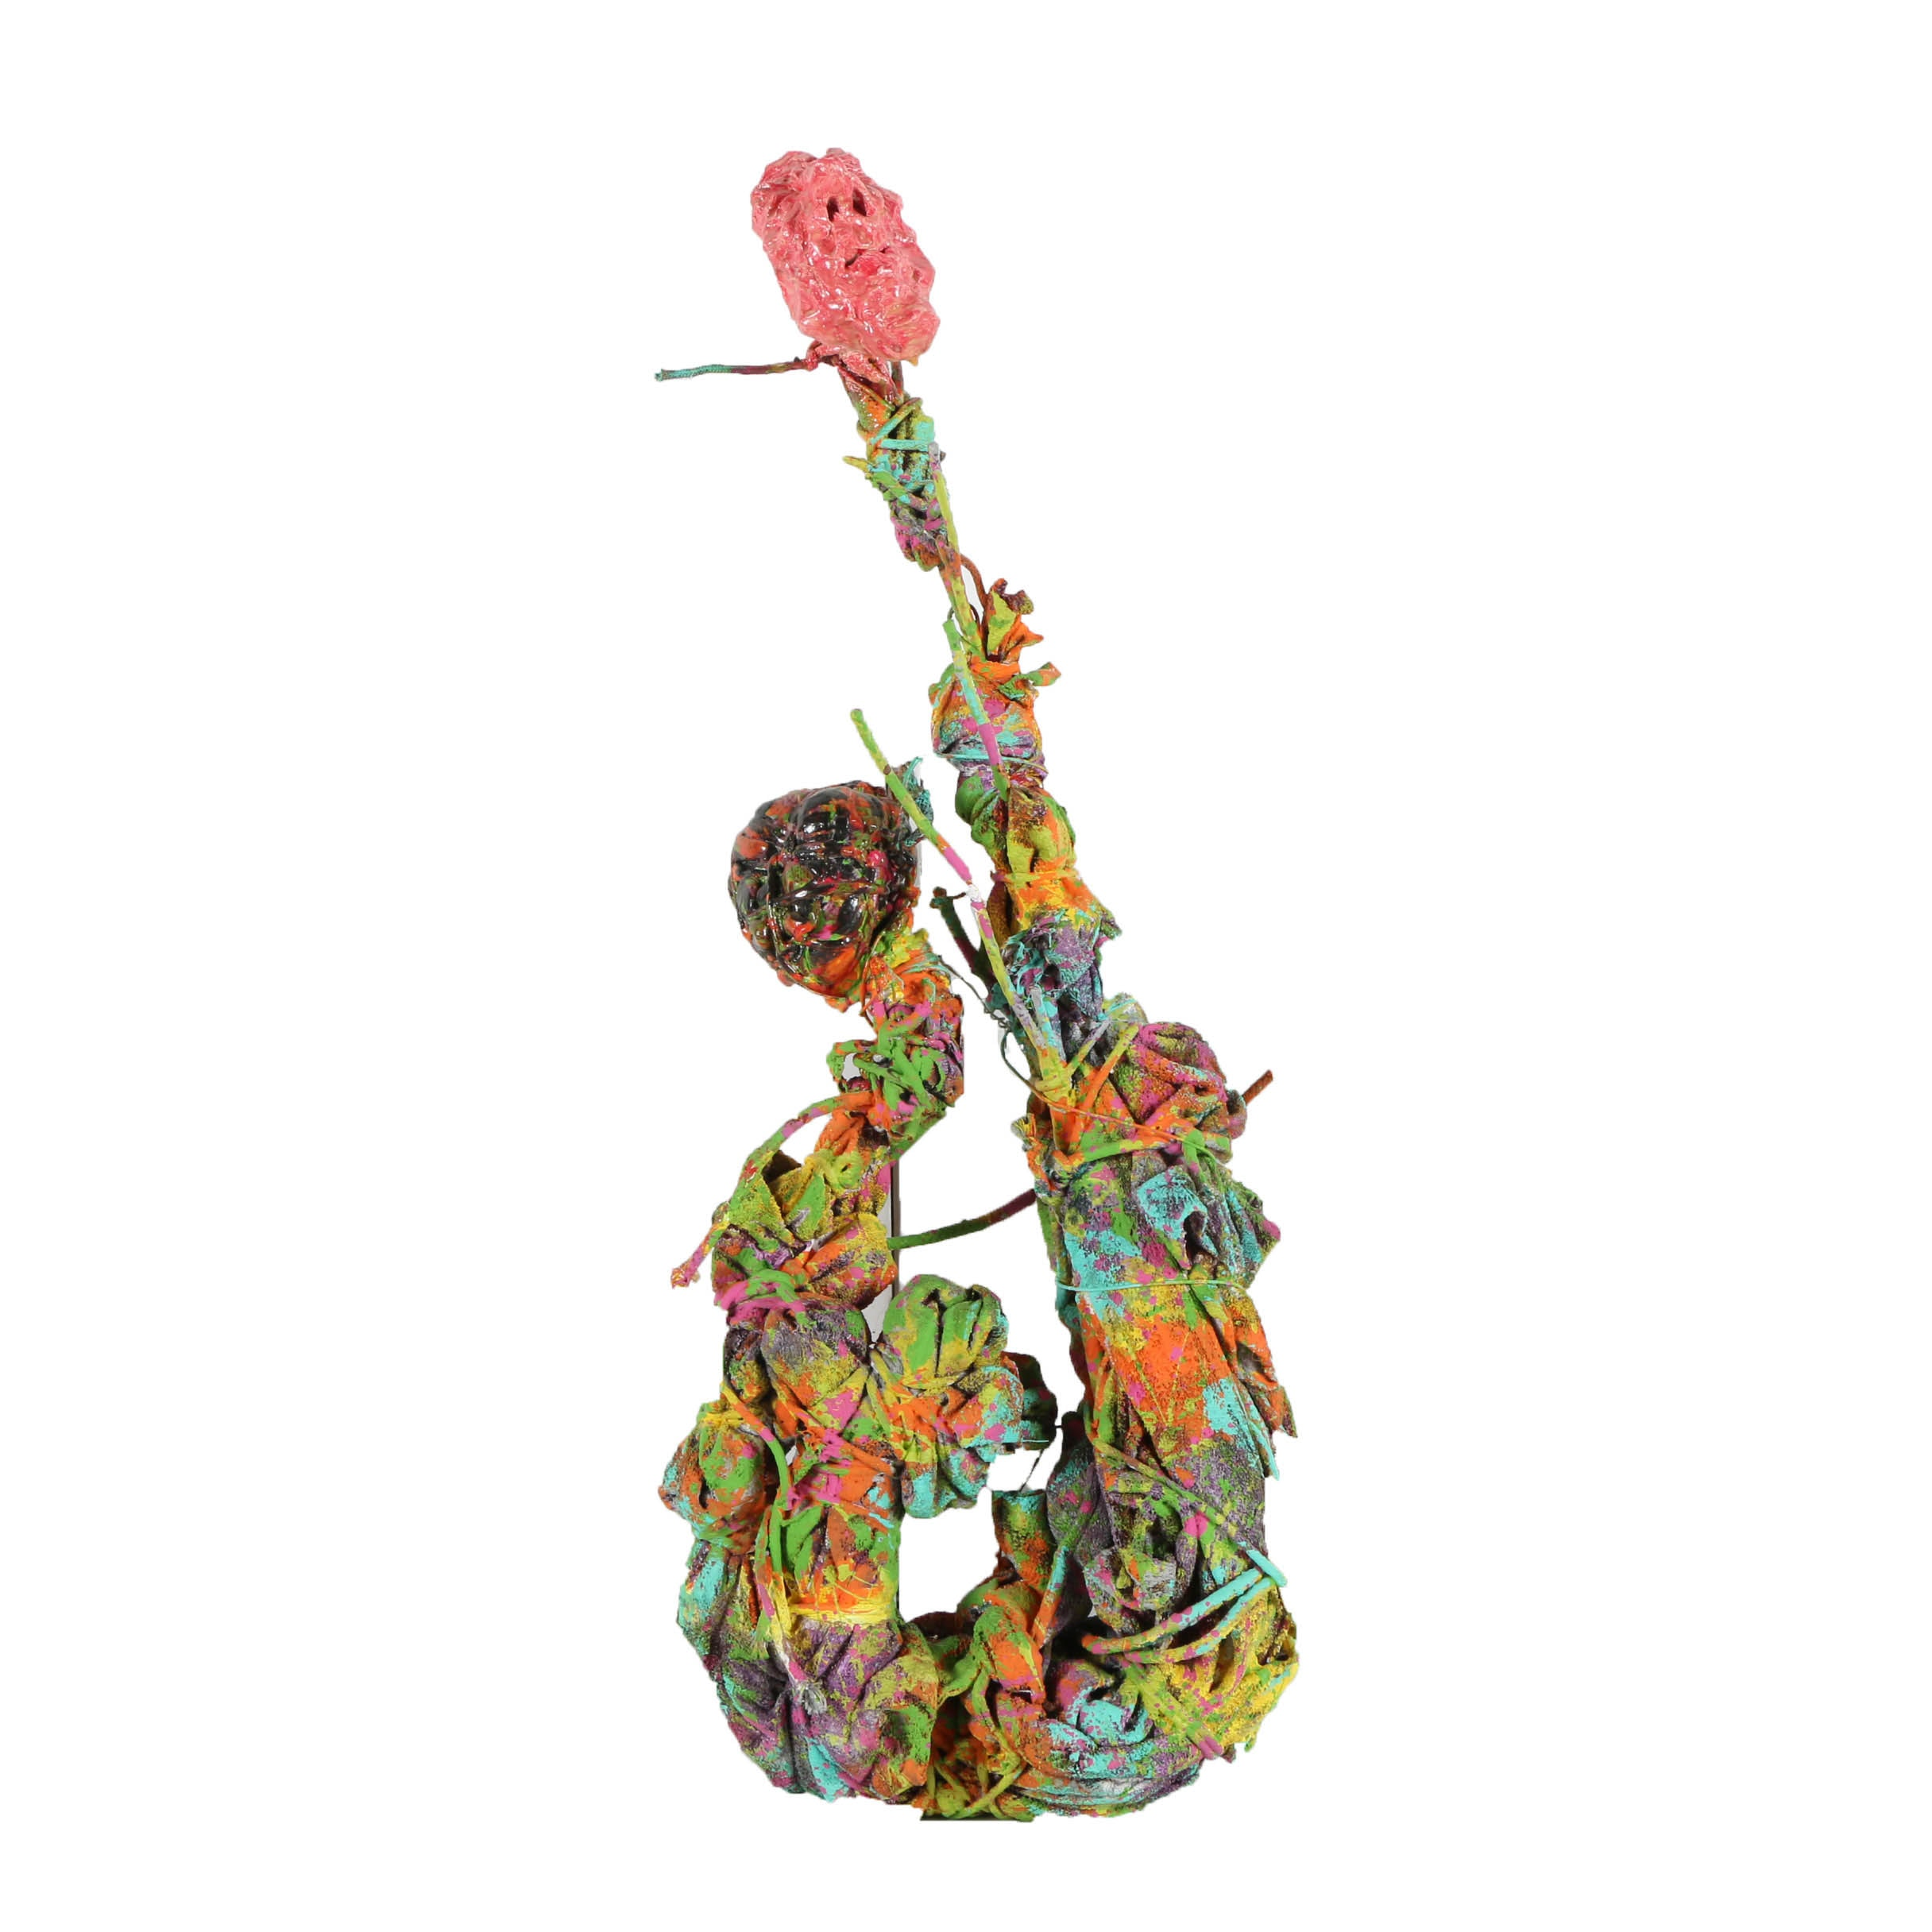 Frank Kowing Mixed Media Sculpture Abstract Humanoid Figure